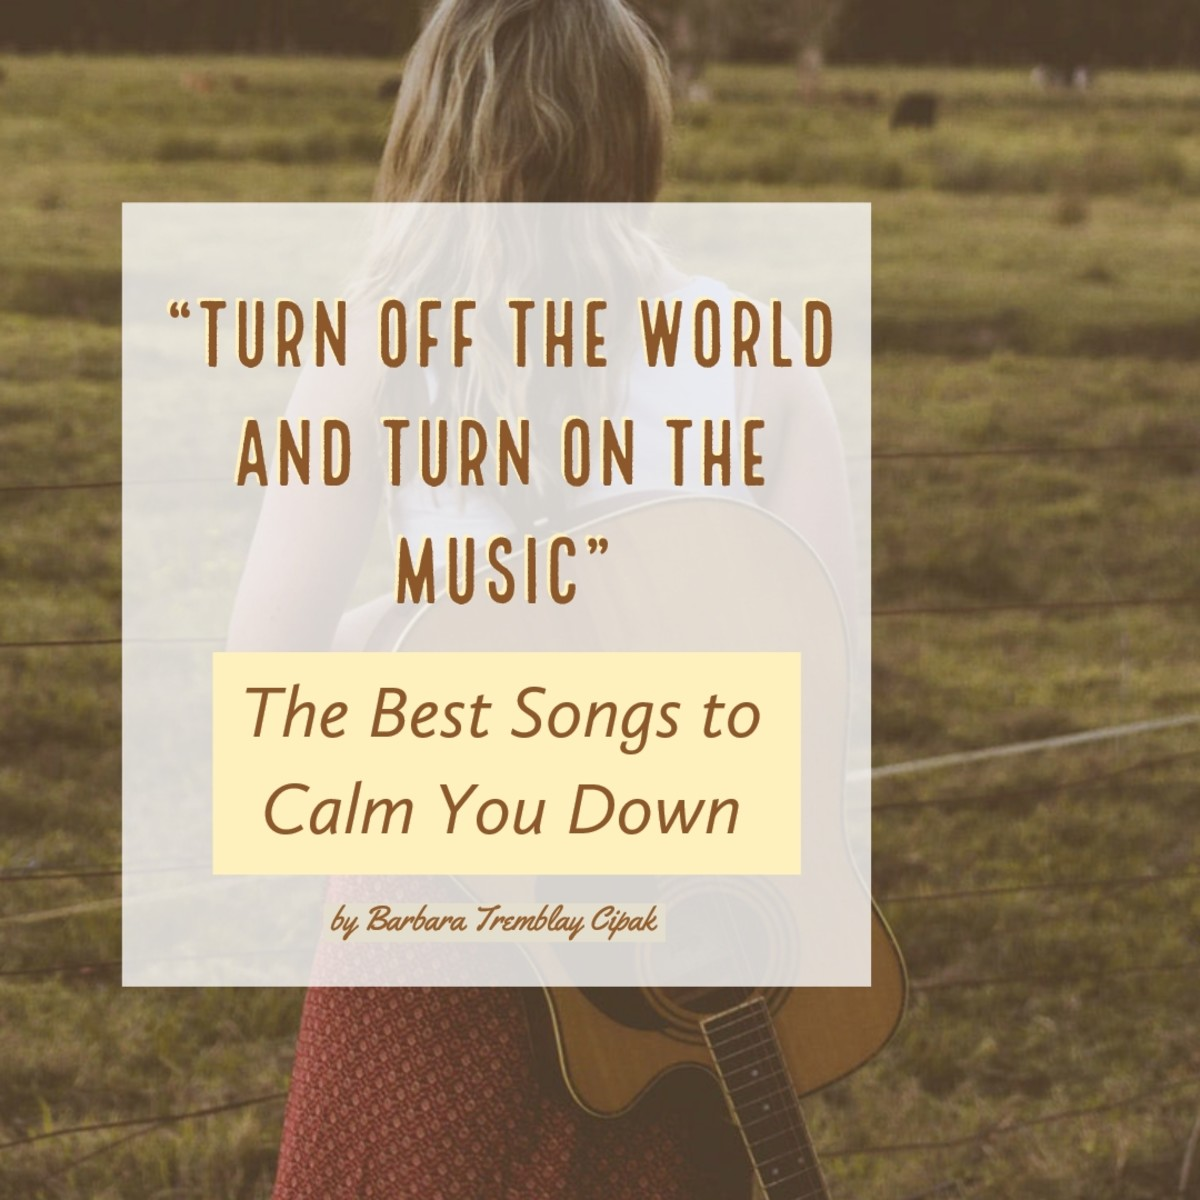 Turn of the World and Turn on the Music with the Best Songs to Calm You Down